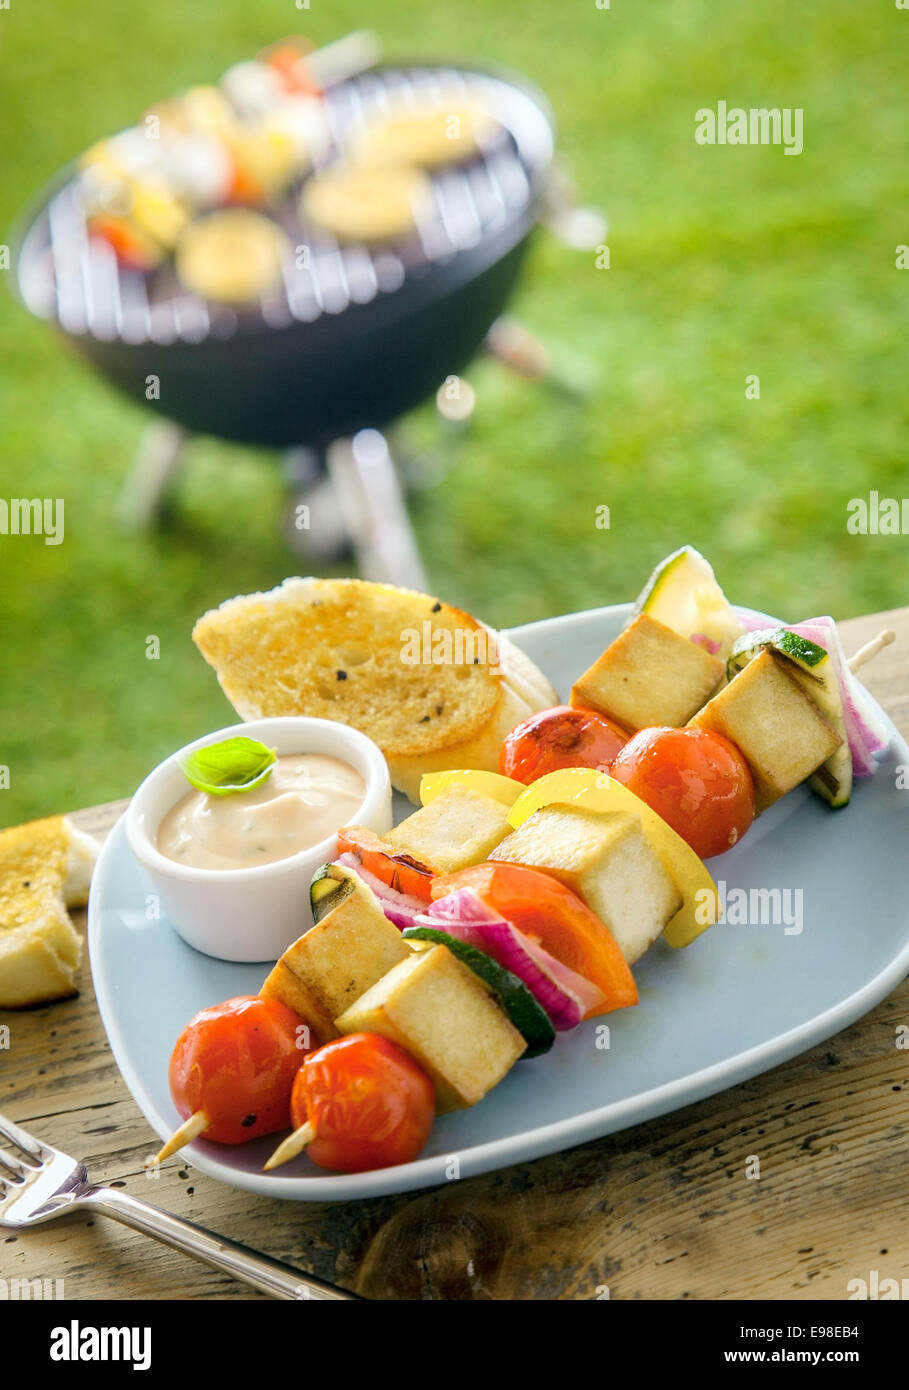 Outdoors Summer bbq smoked tofu on a table with a tofu kebab and a grill in the background - Stock Image